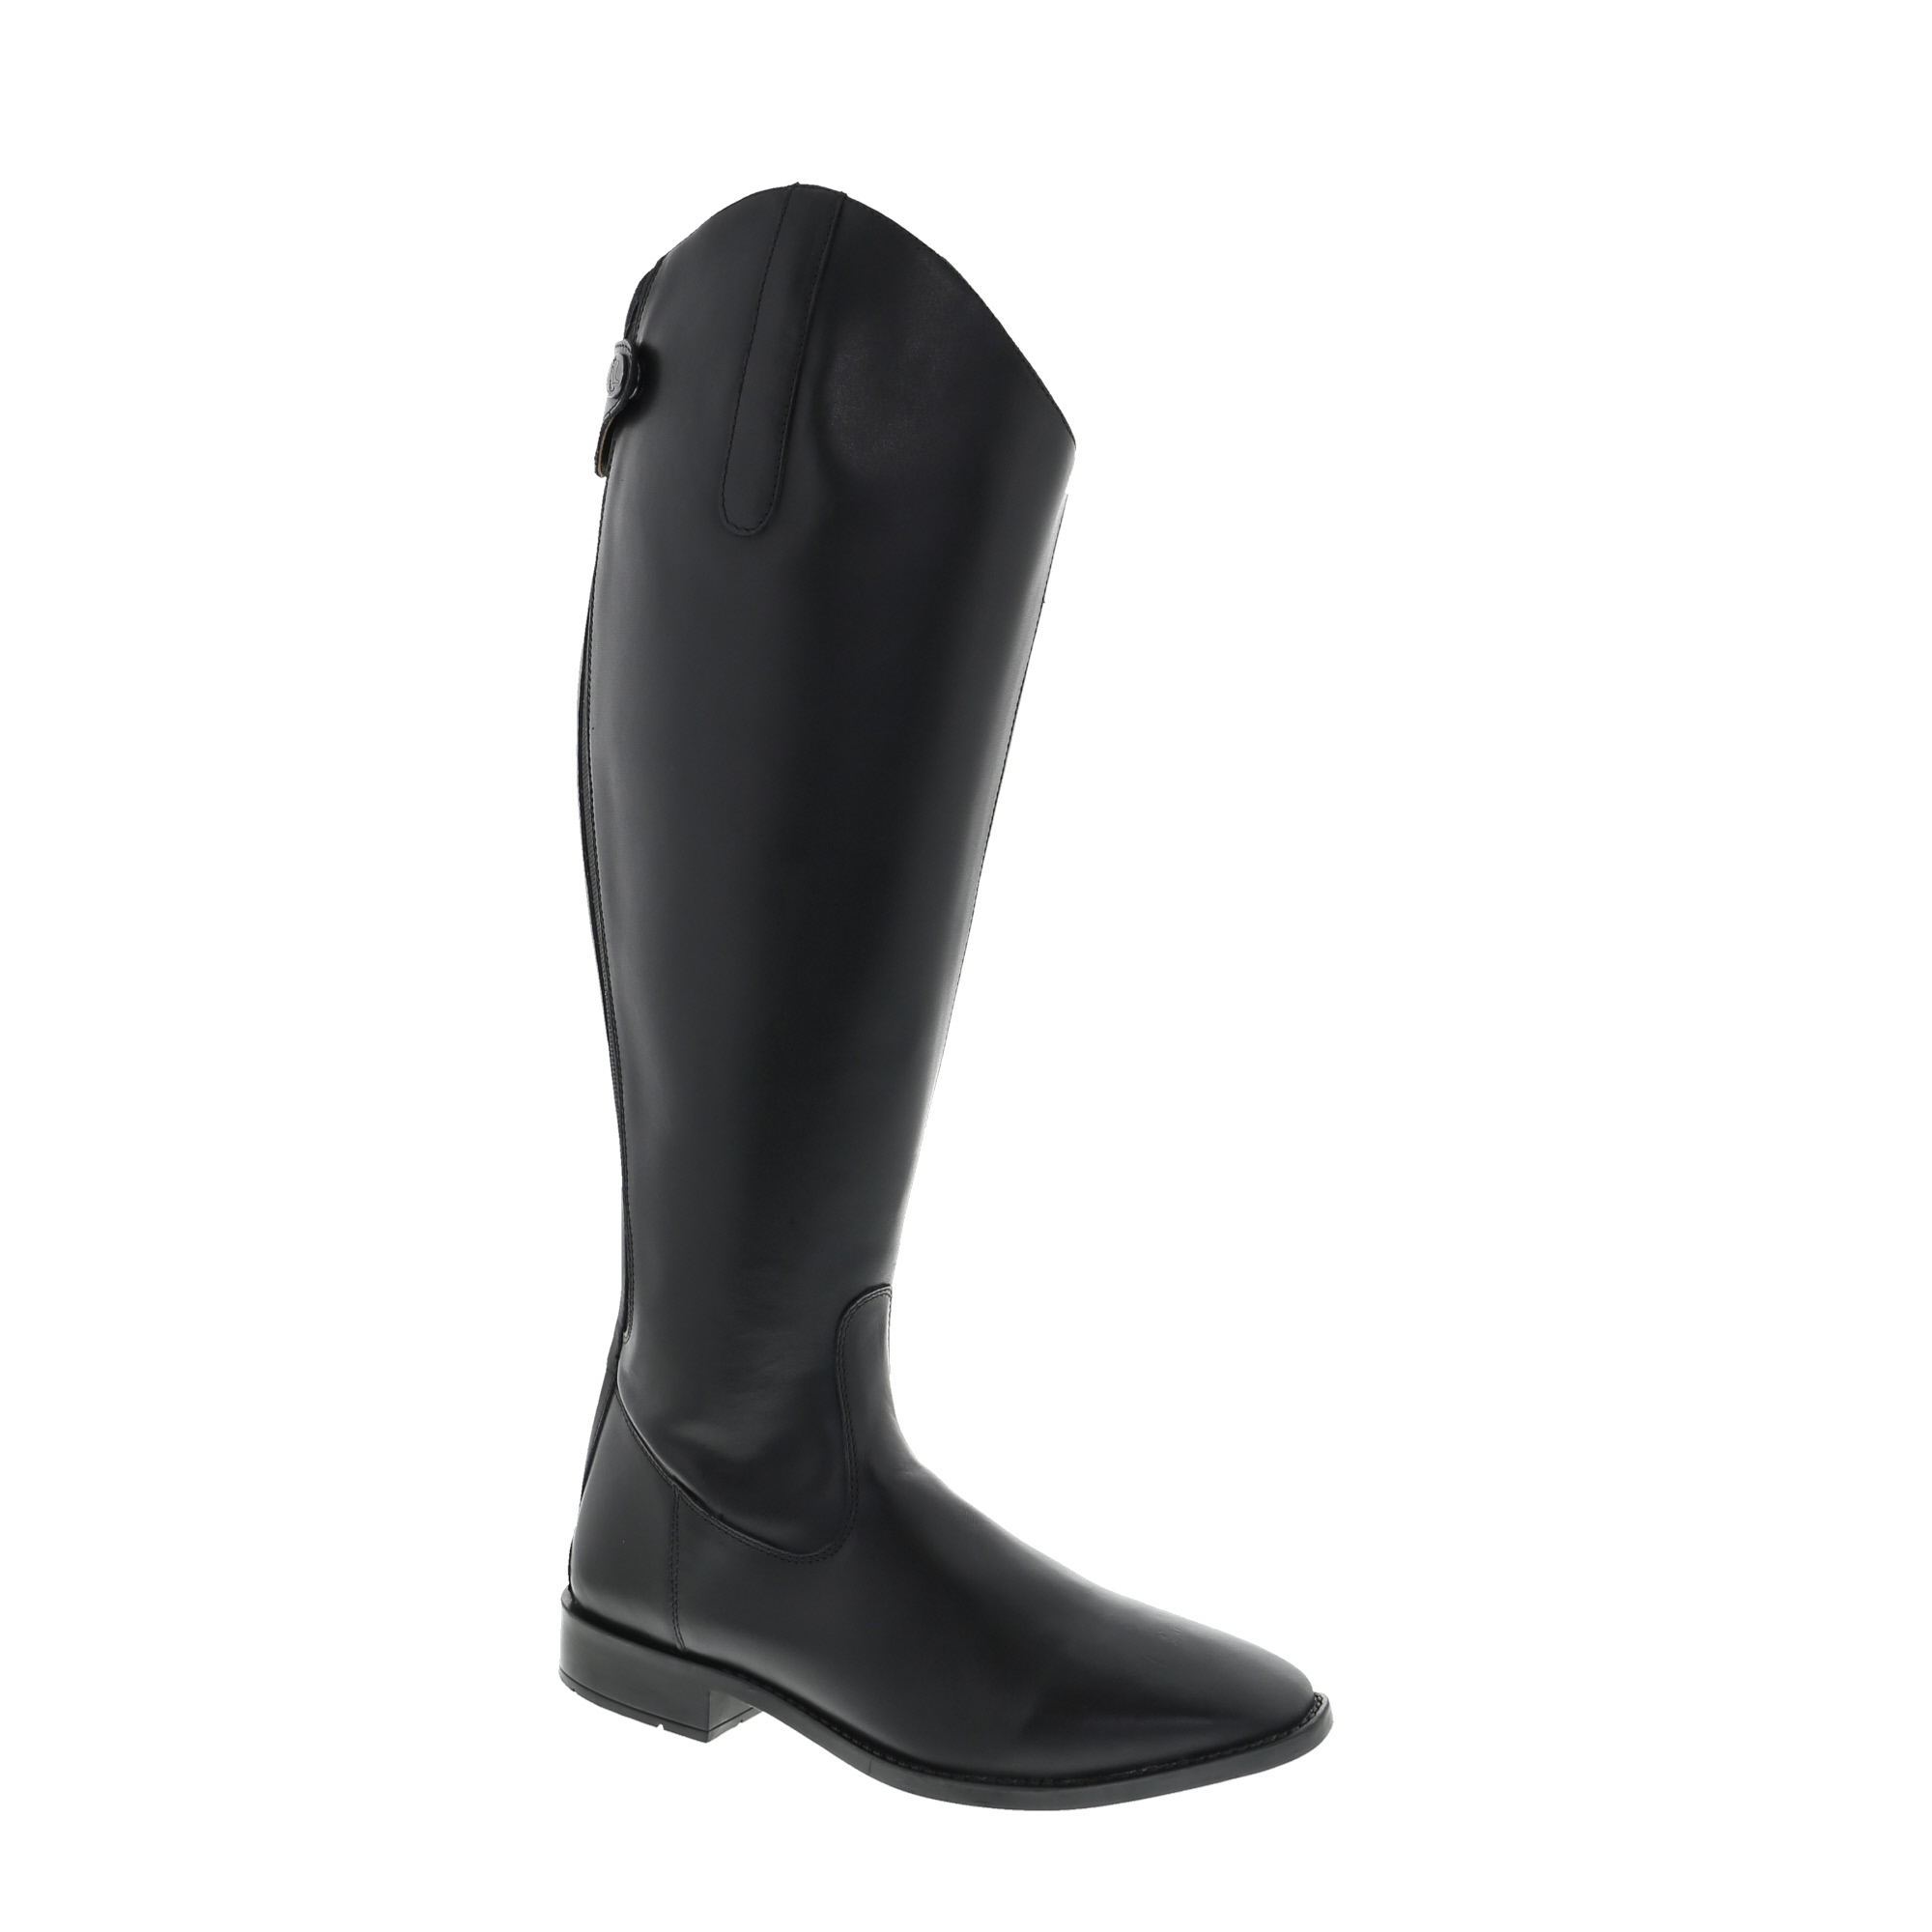 The Keira Dress Boot